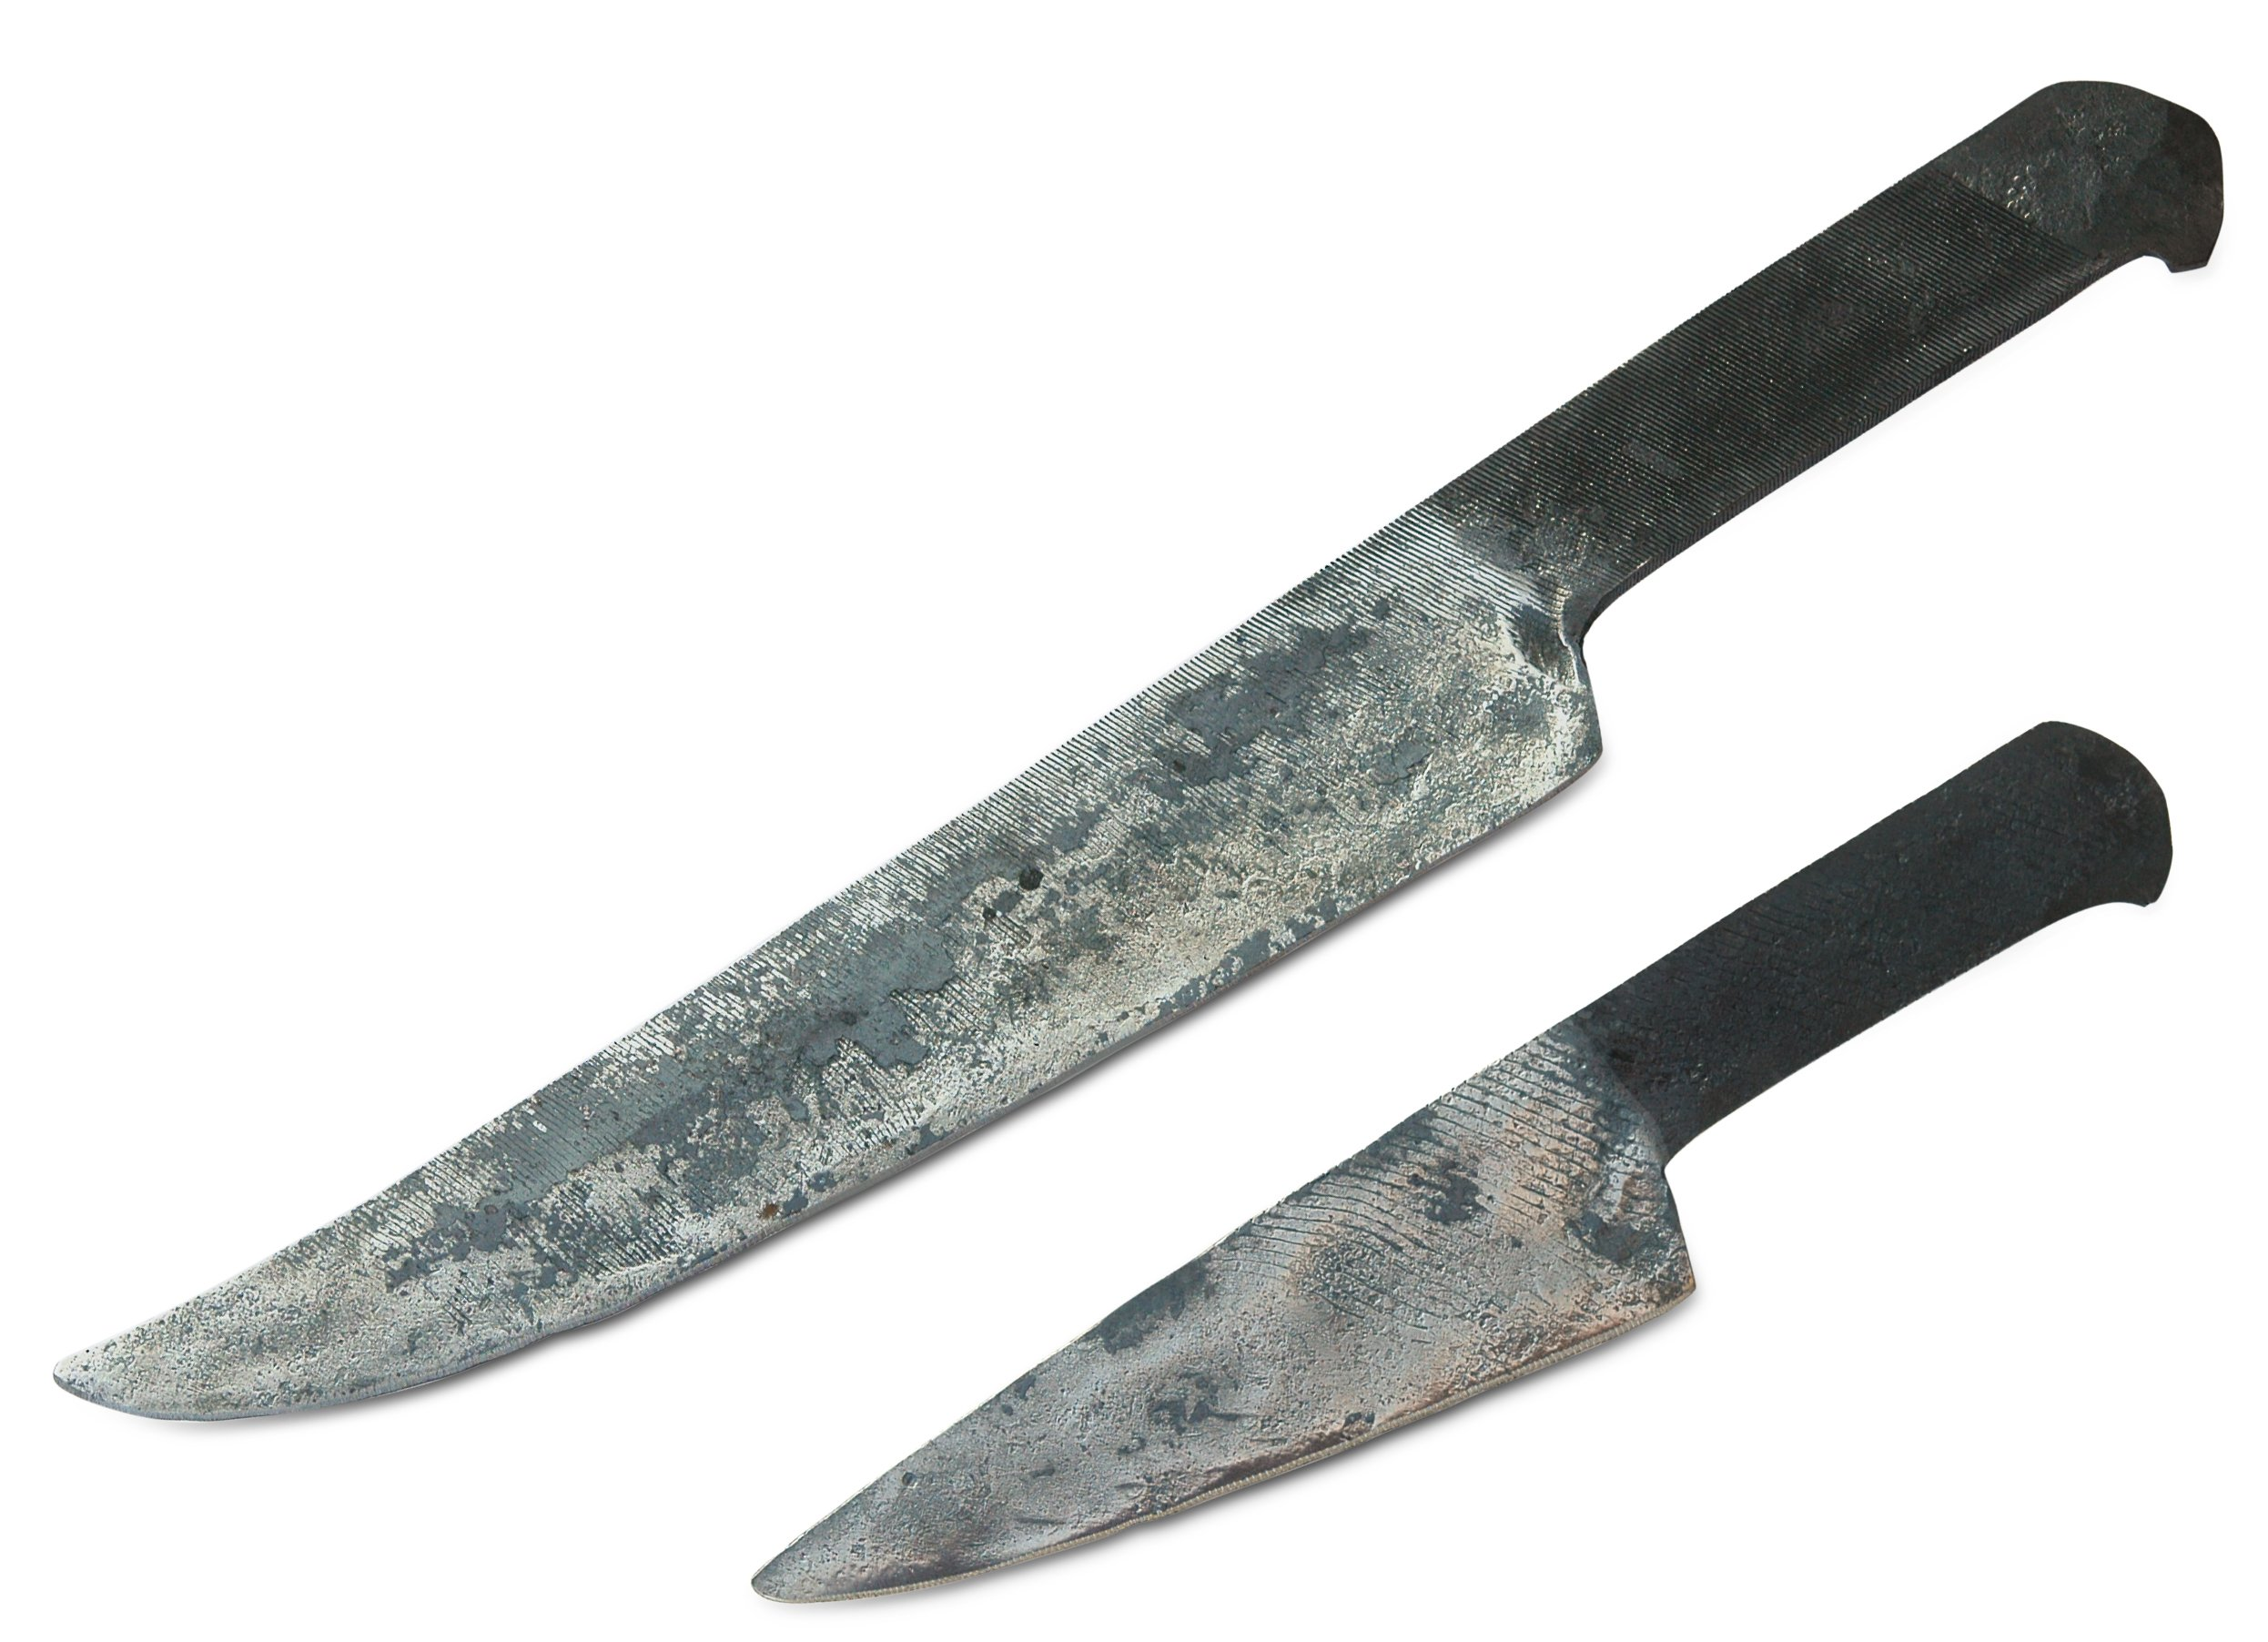 Forged in Fire from Steel File : Nude Knife : Cave Man Collection - Add Custom Handle to Make a Full Tang Knife : Specialty Carbon Steel Knives for Hunters, Chefs